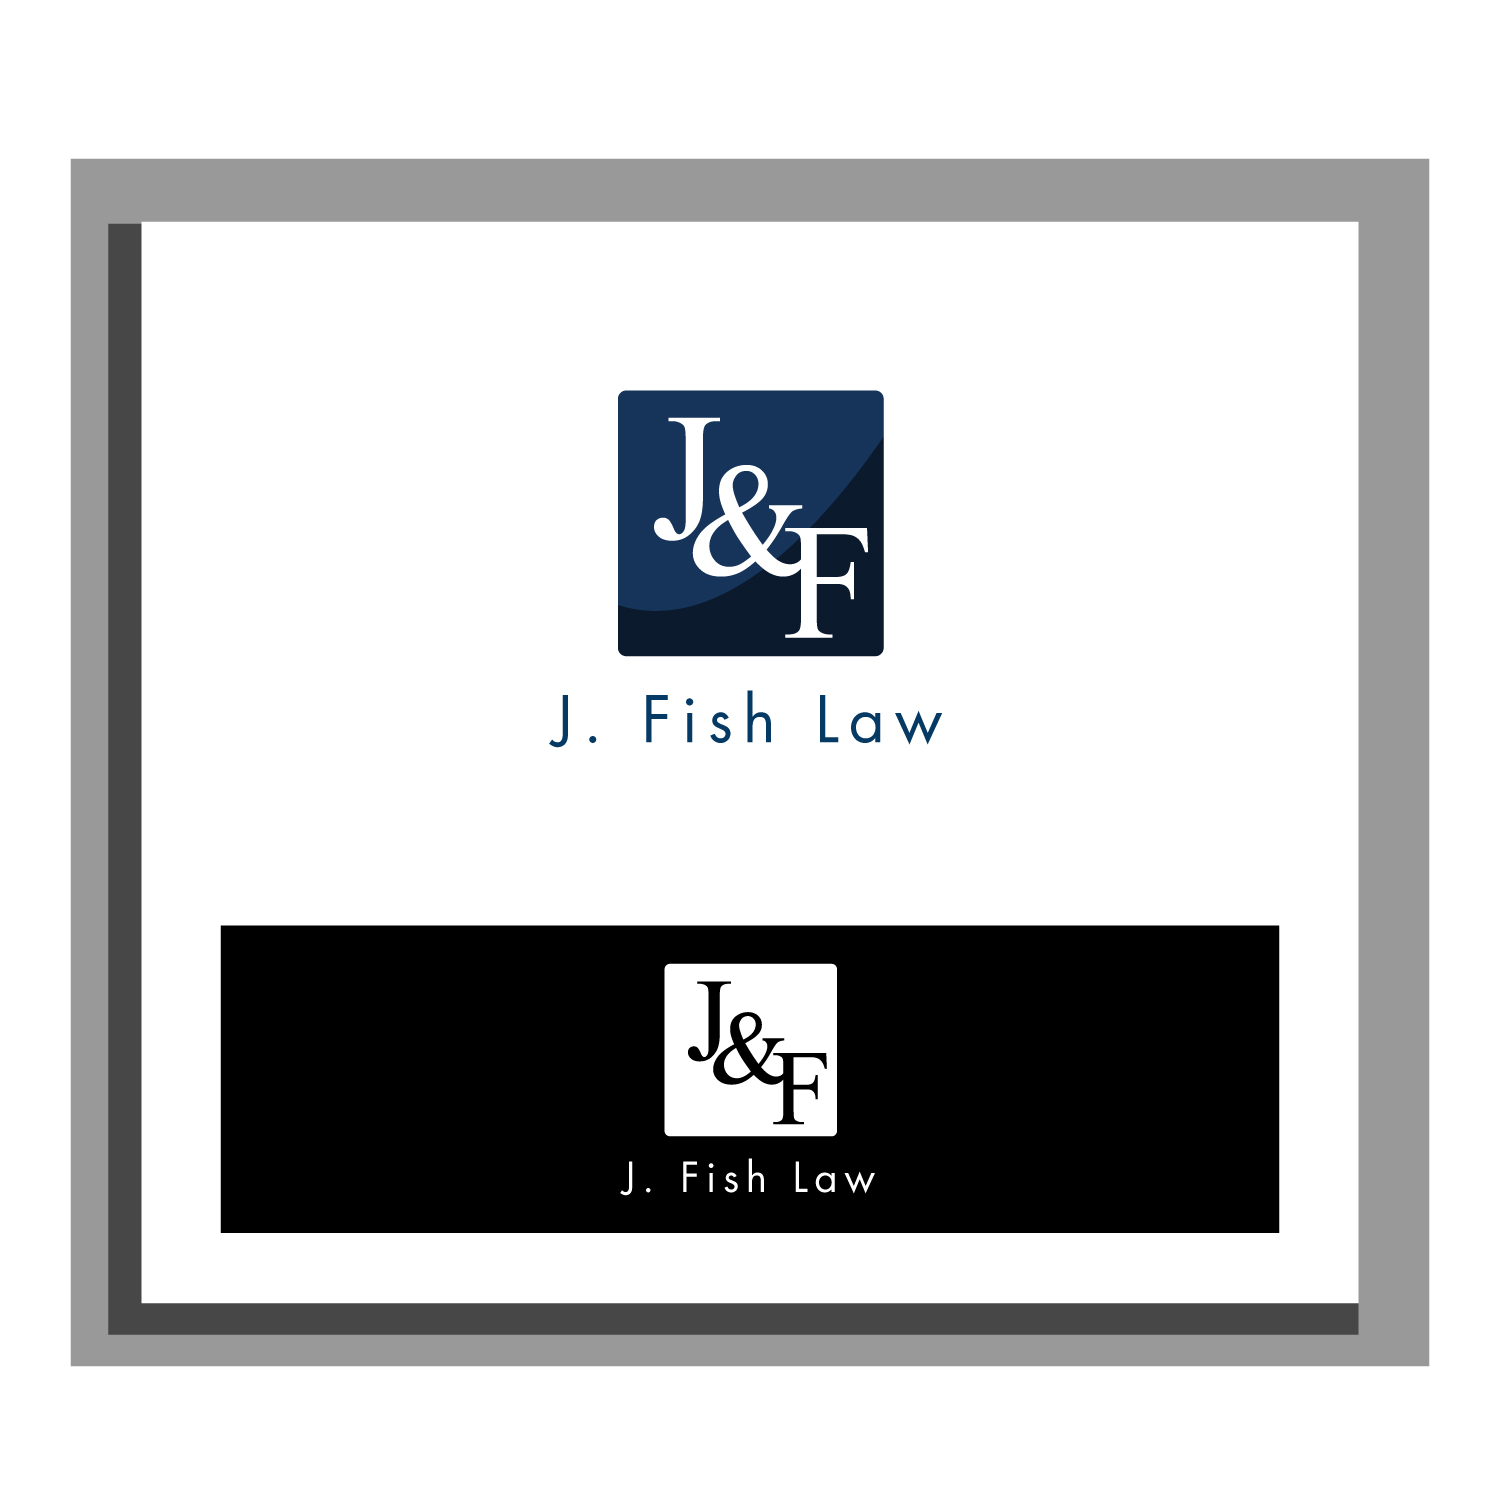 Elegant spielerisch logo design for leah fish by for Fish law firm